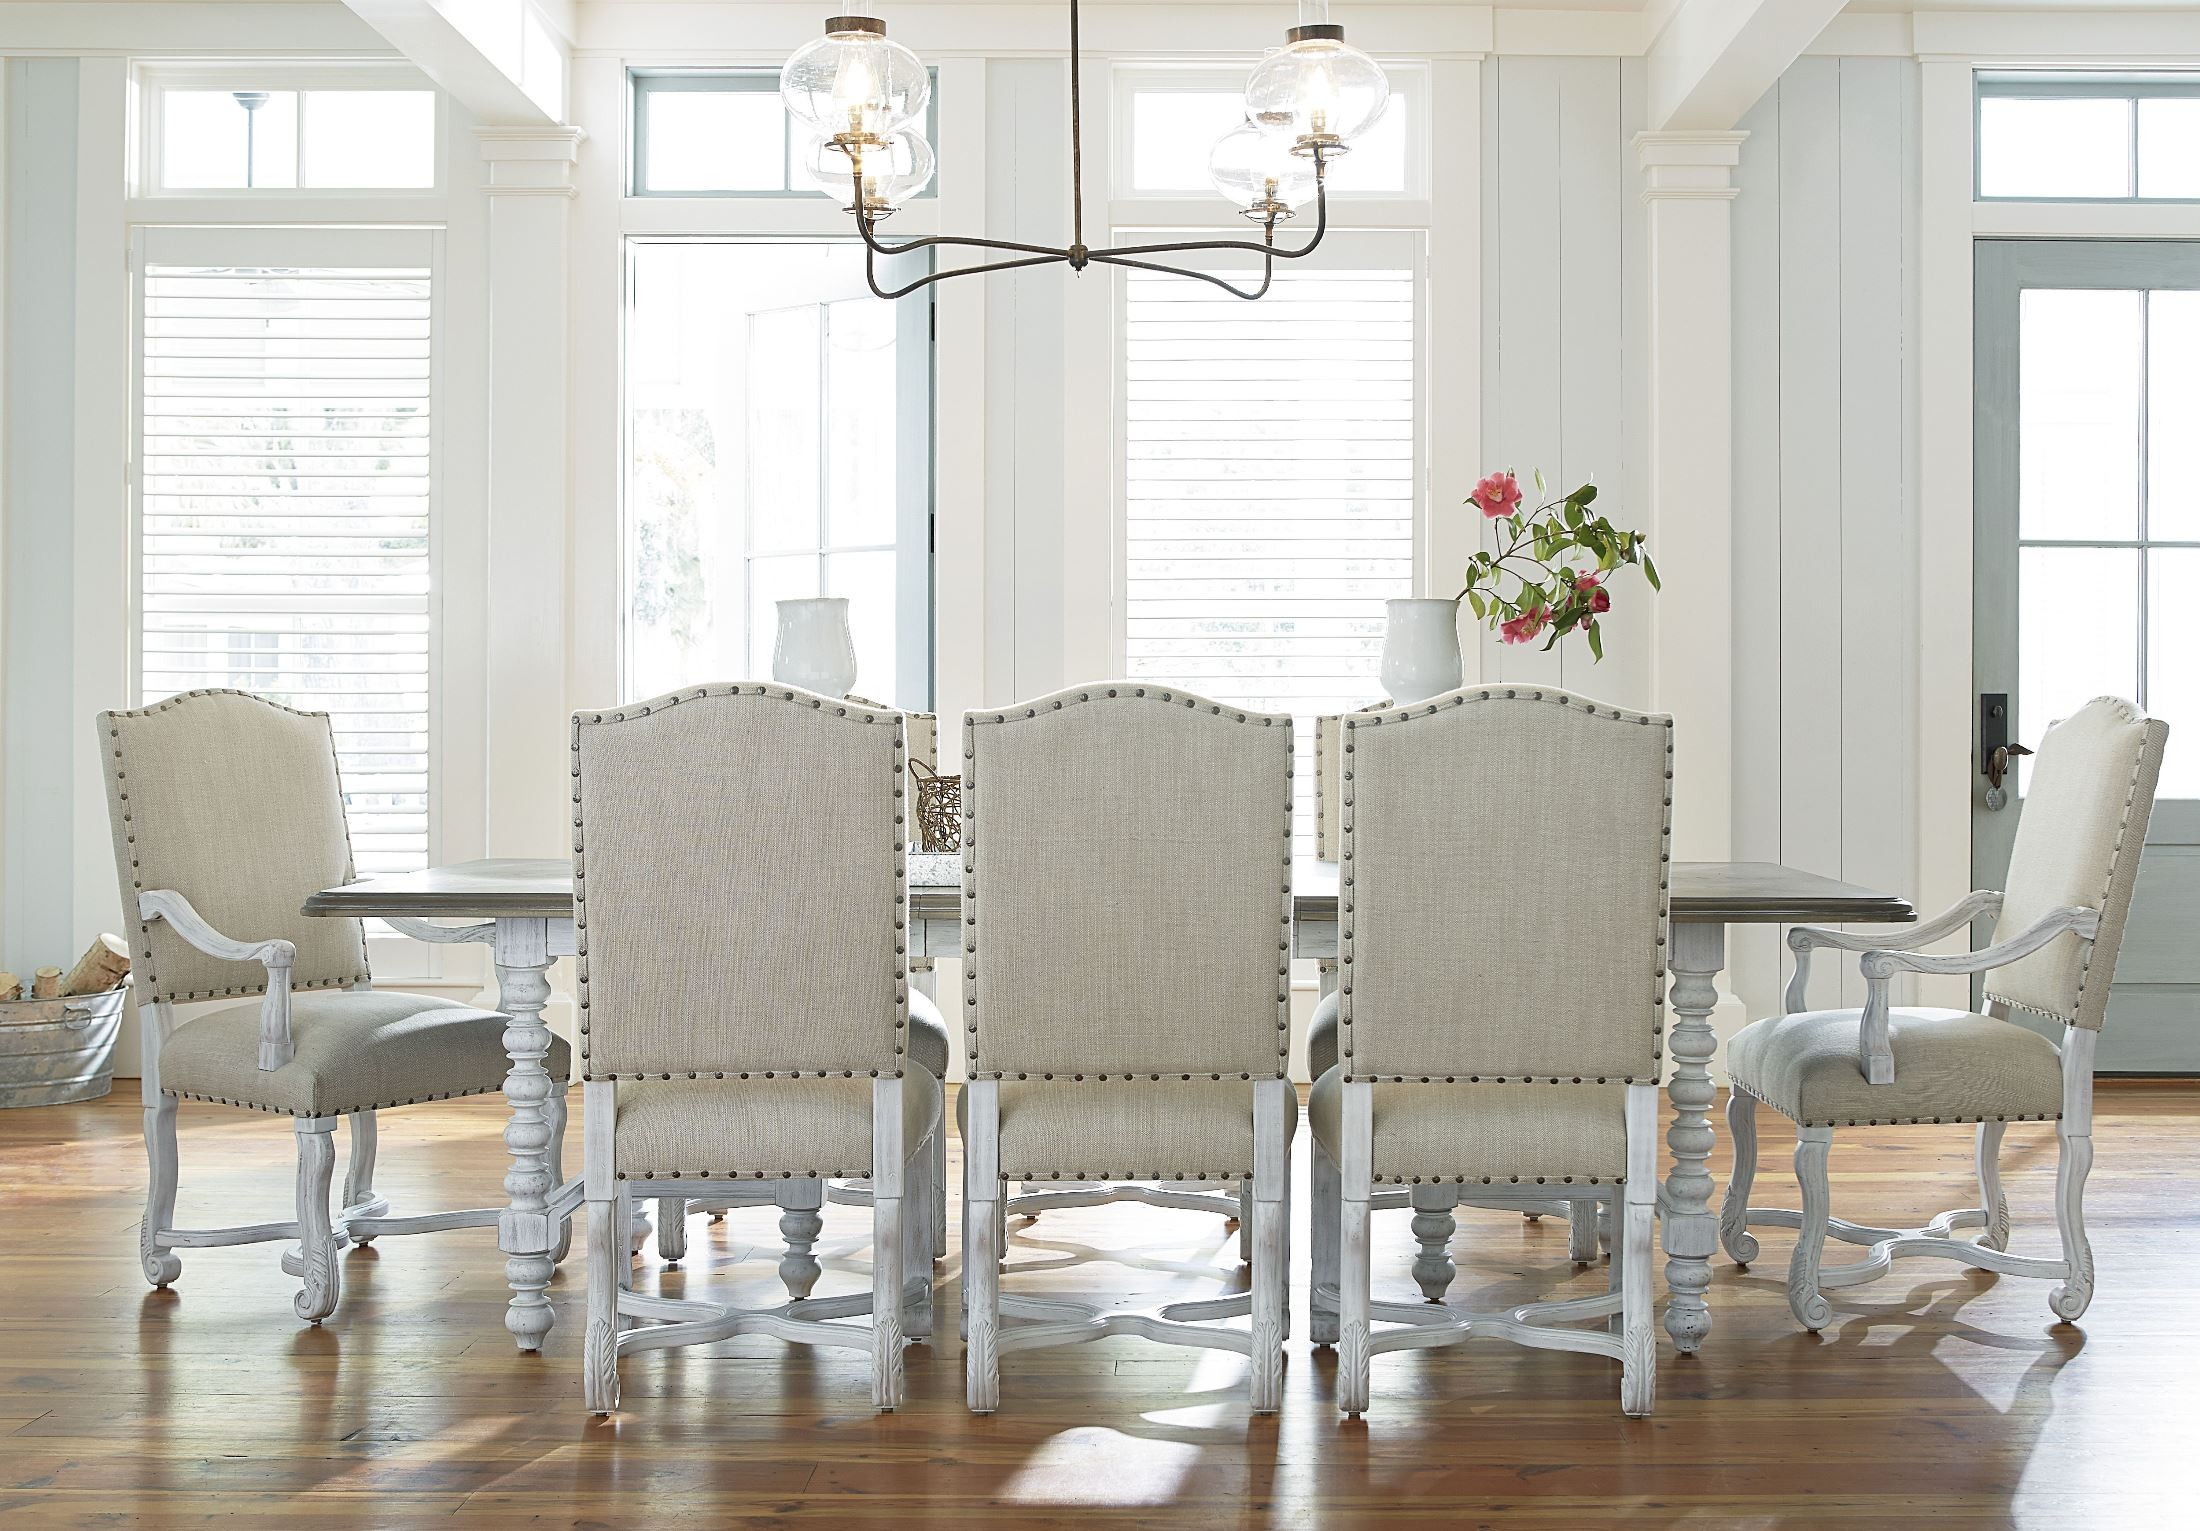 paula deen dogwood dining chairs chair covers for celebrations essex blossom room set from (597a655) | coleman furniture